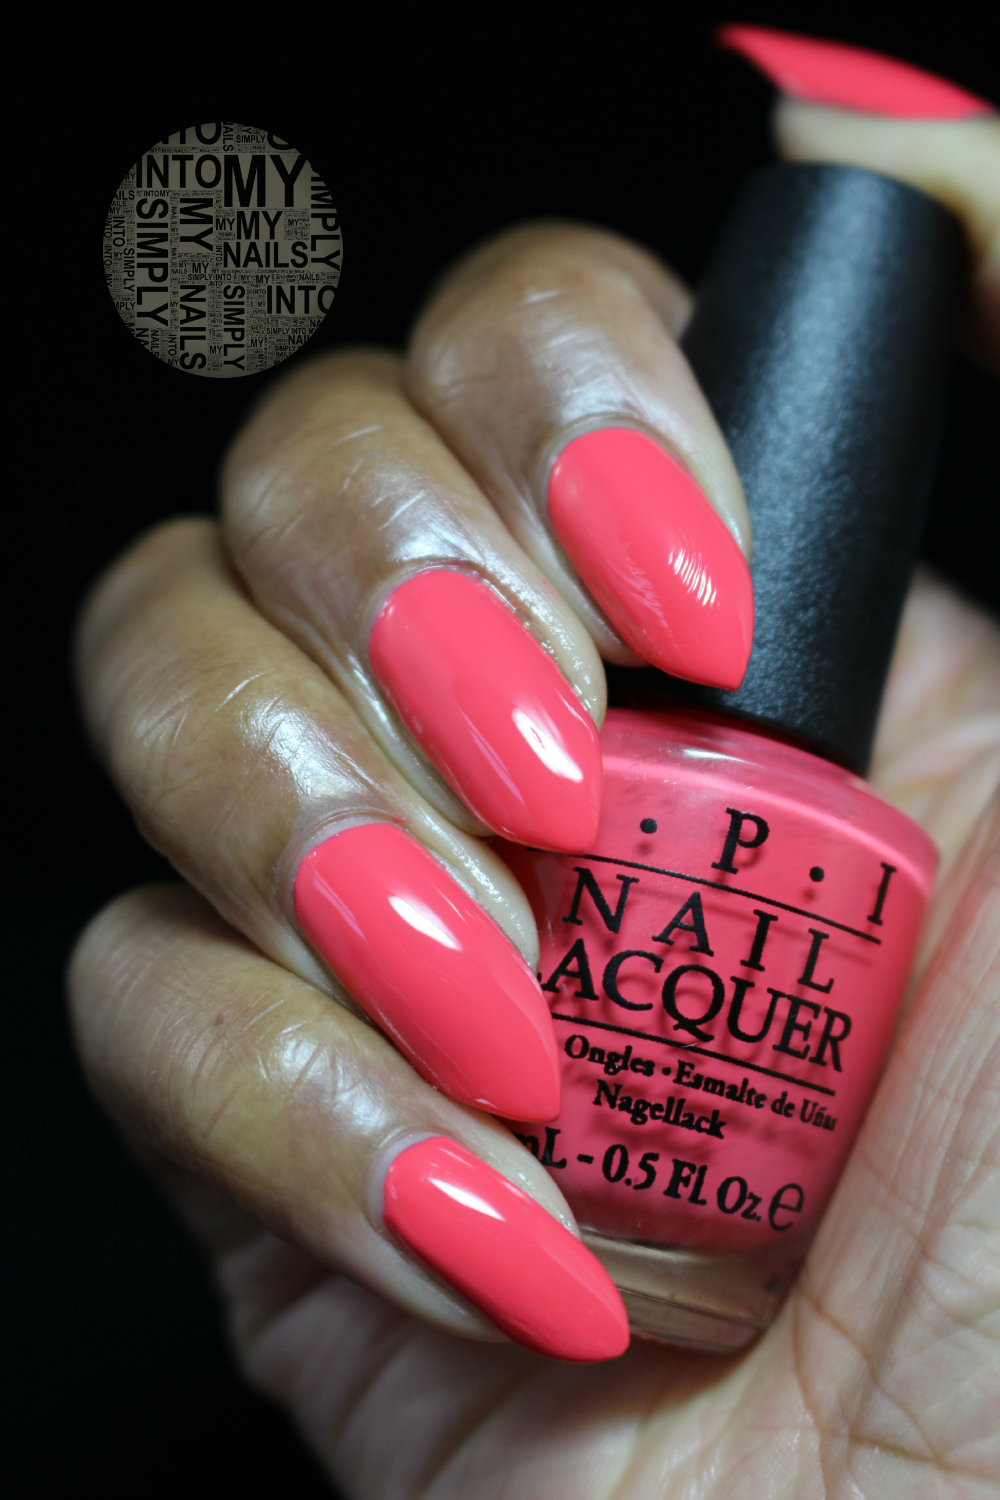 Live.Love.Carnaval by OPI | Simply Into My NAILS